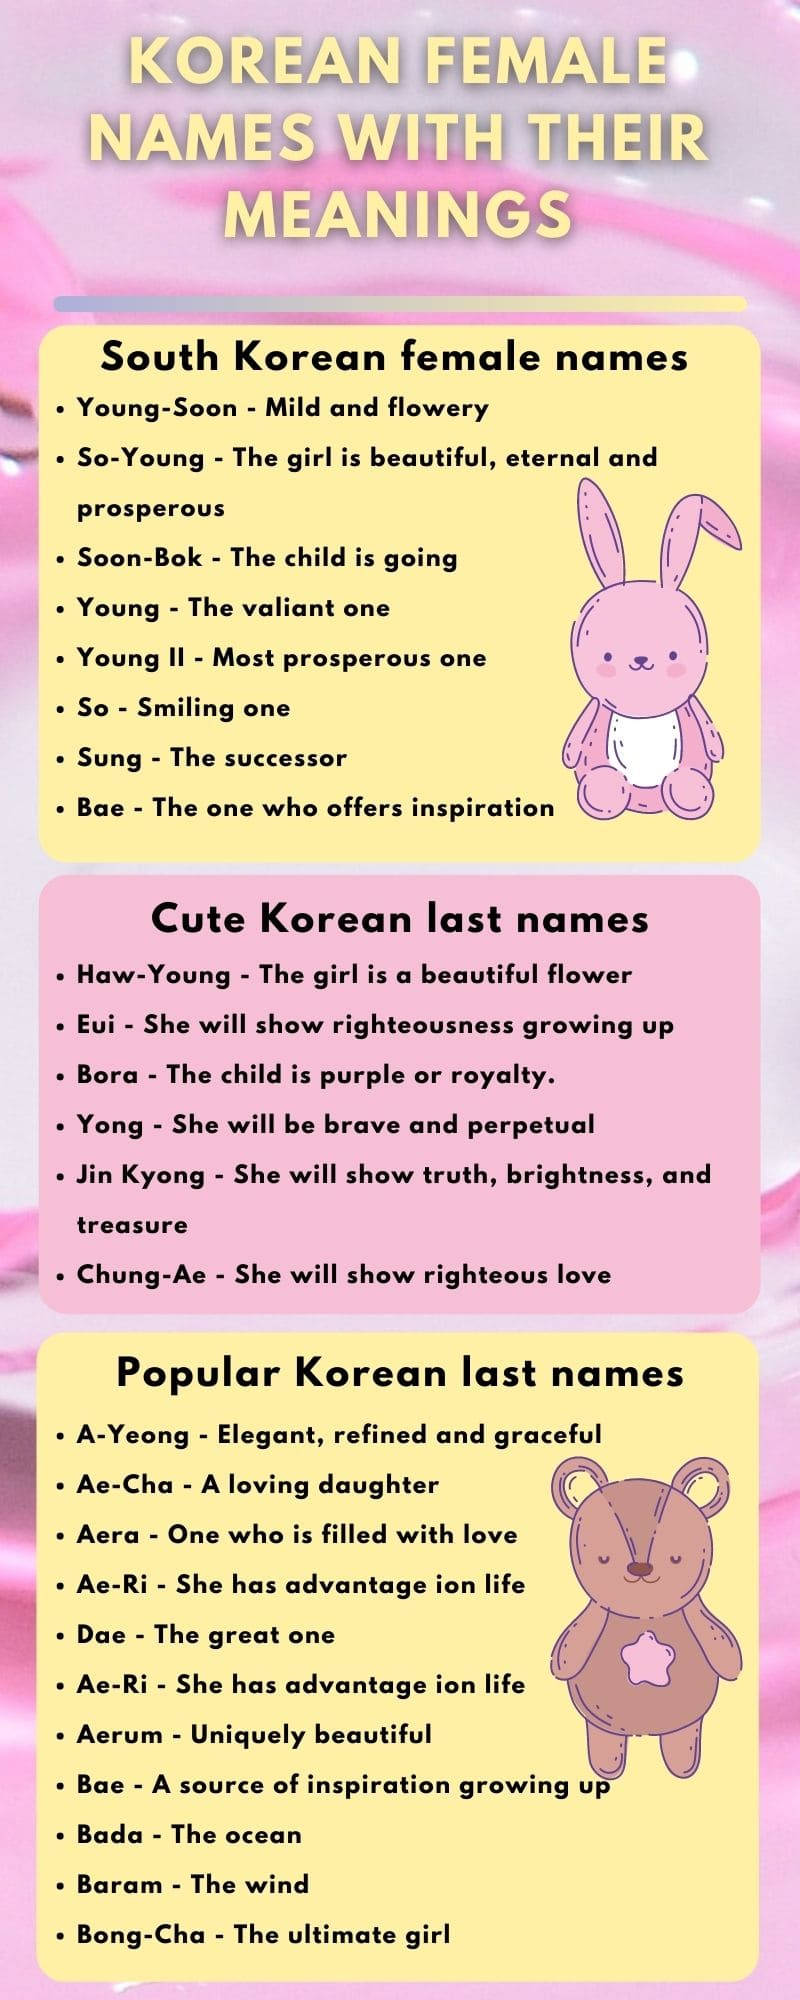 List of Korean female names with their meanings (with infographics)